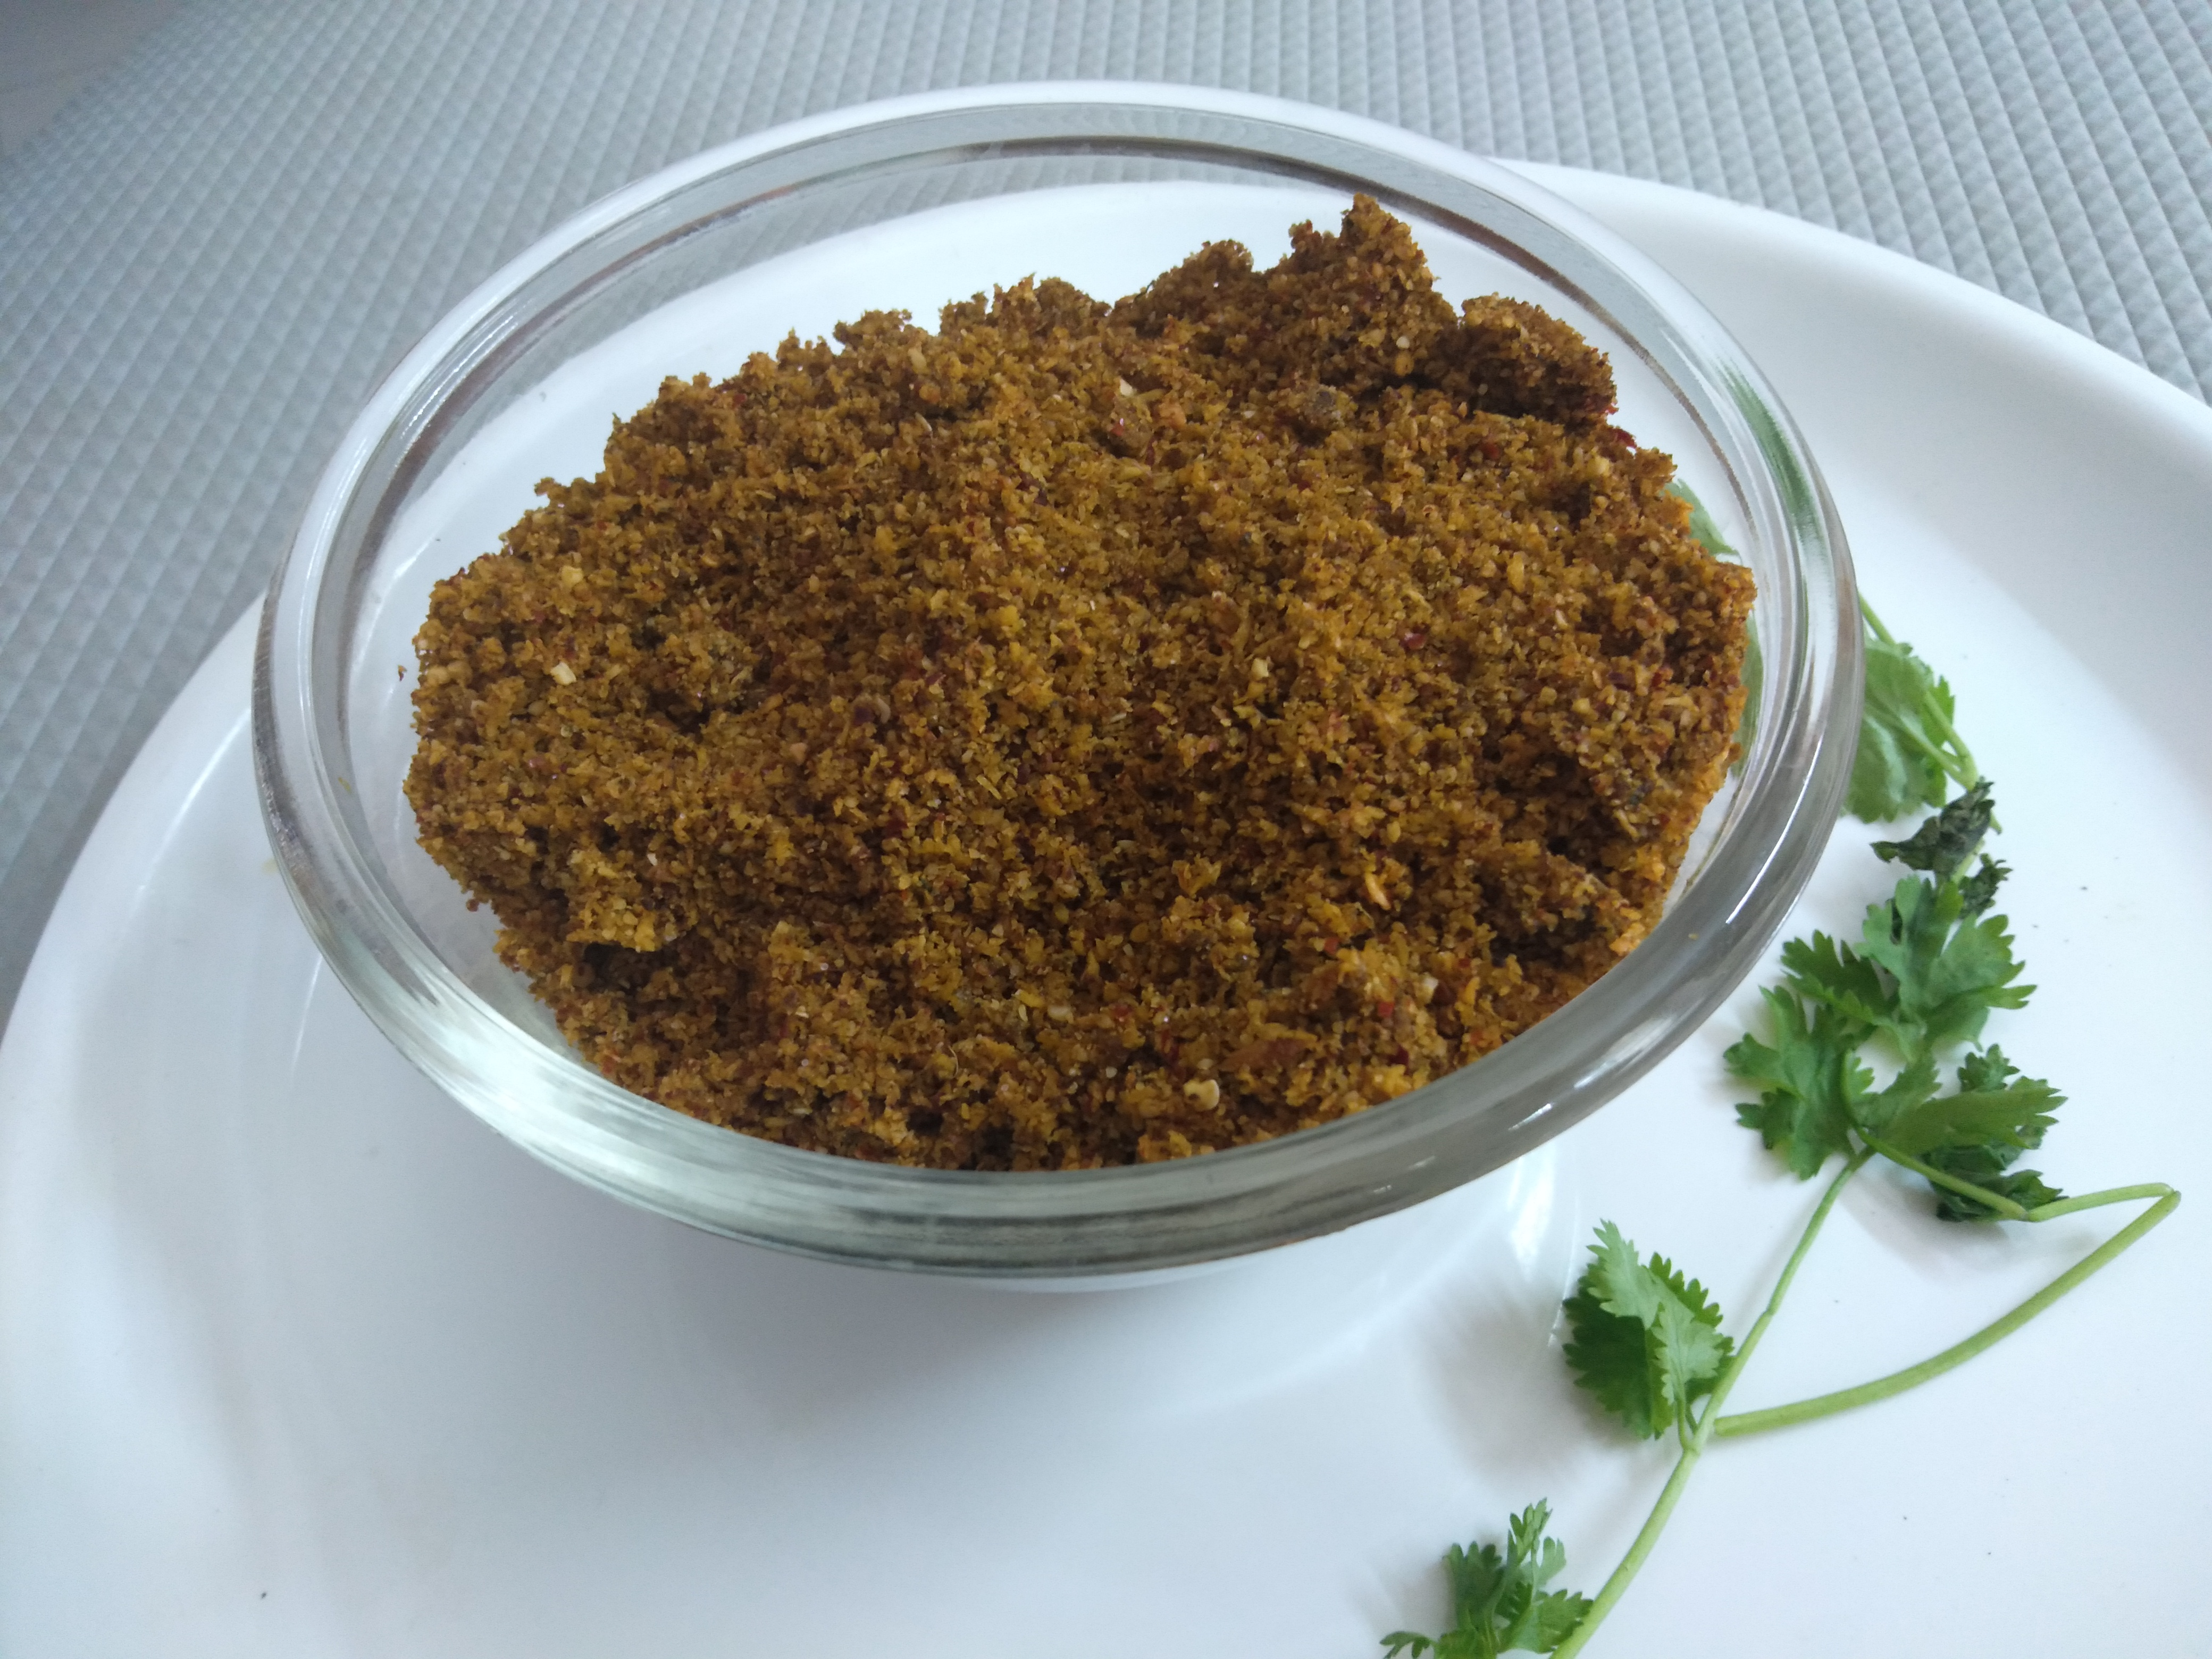 Powder Mixes: Yummy Food Options for the Single Person